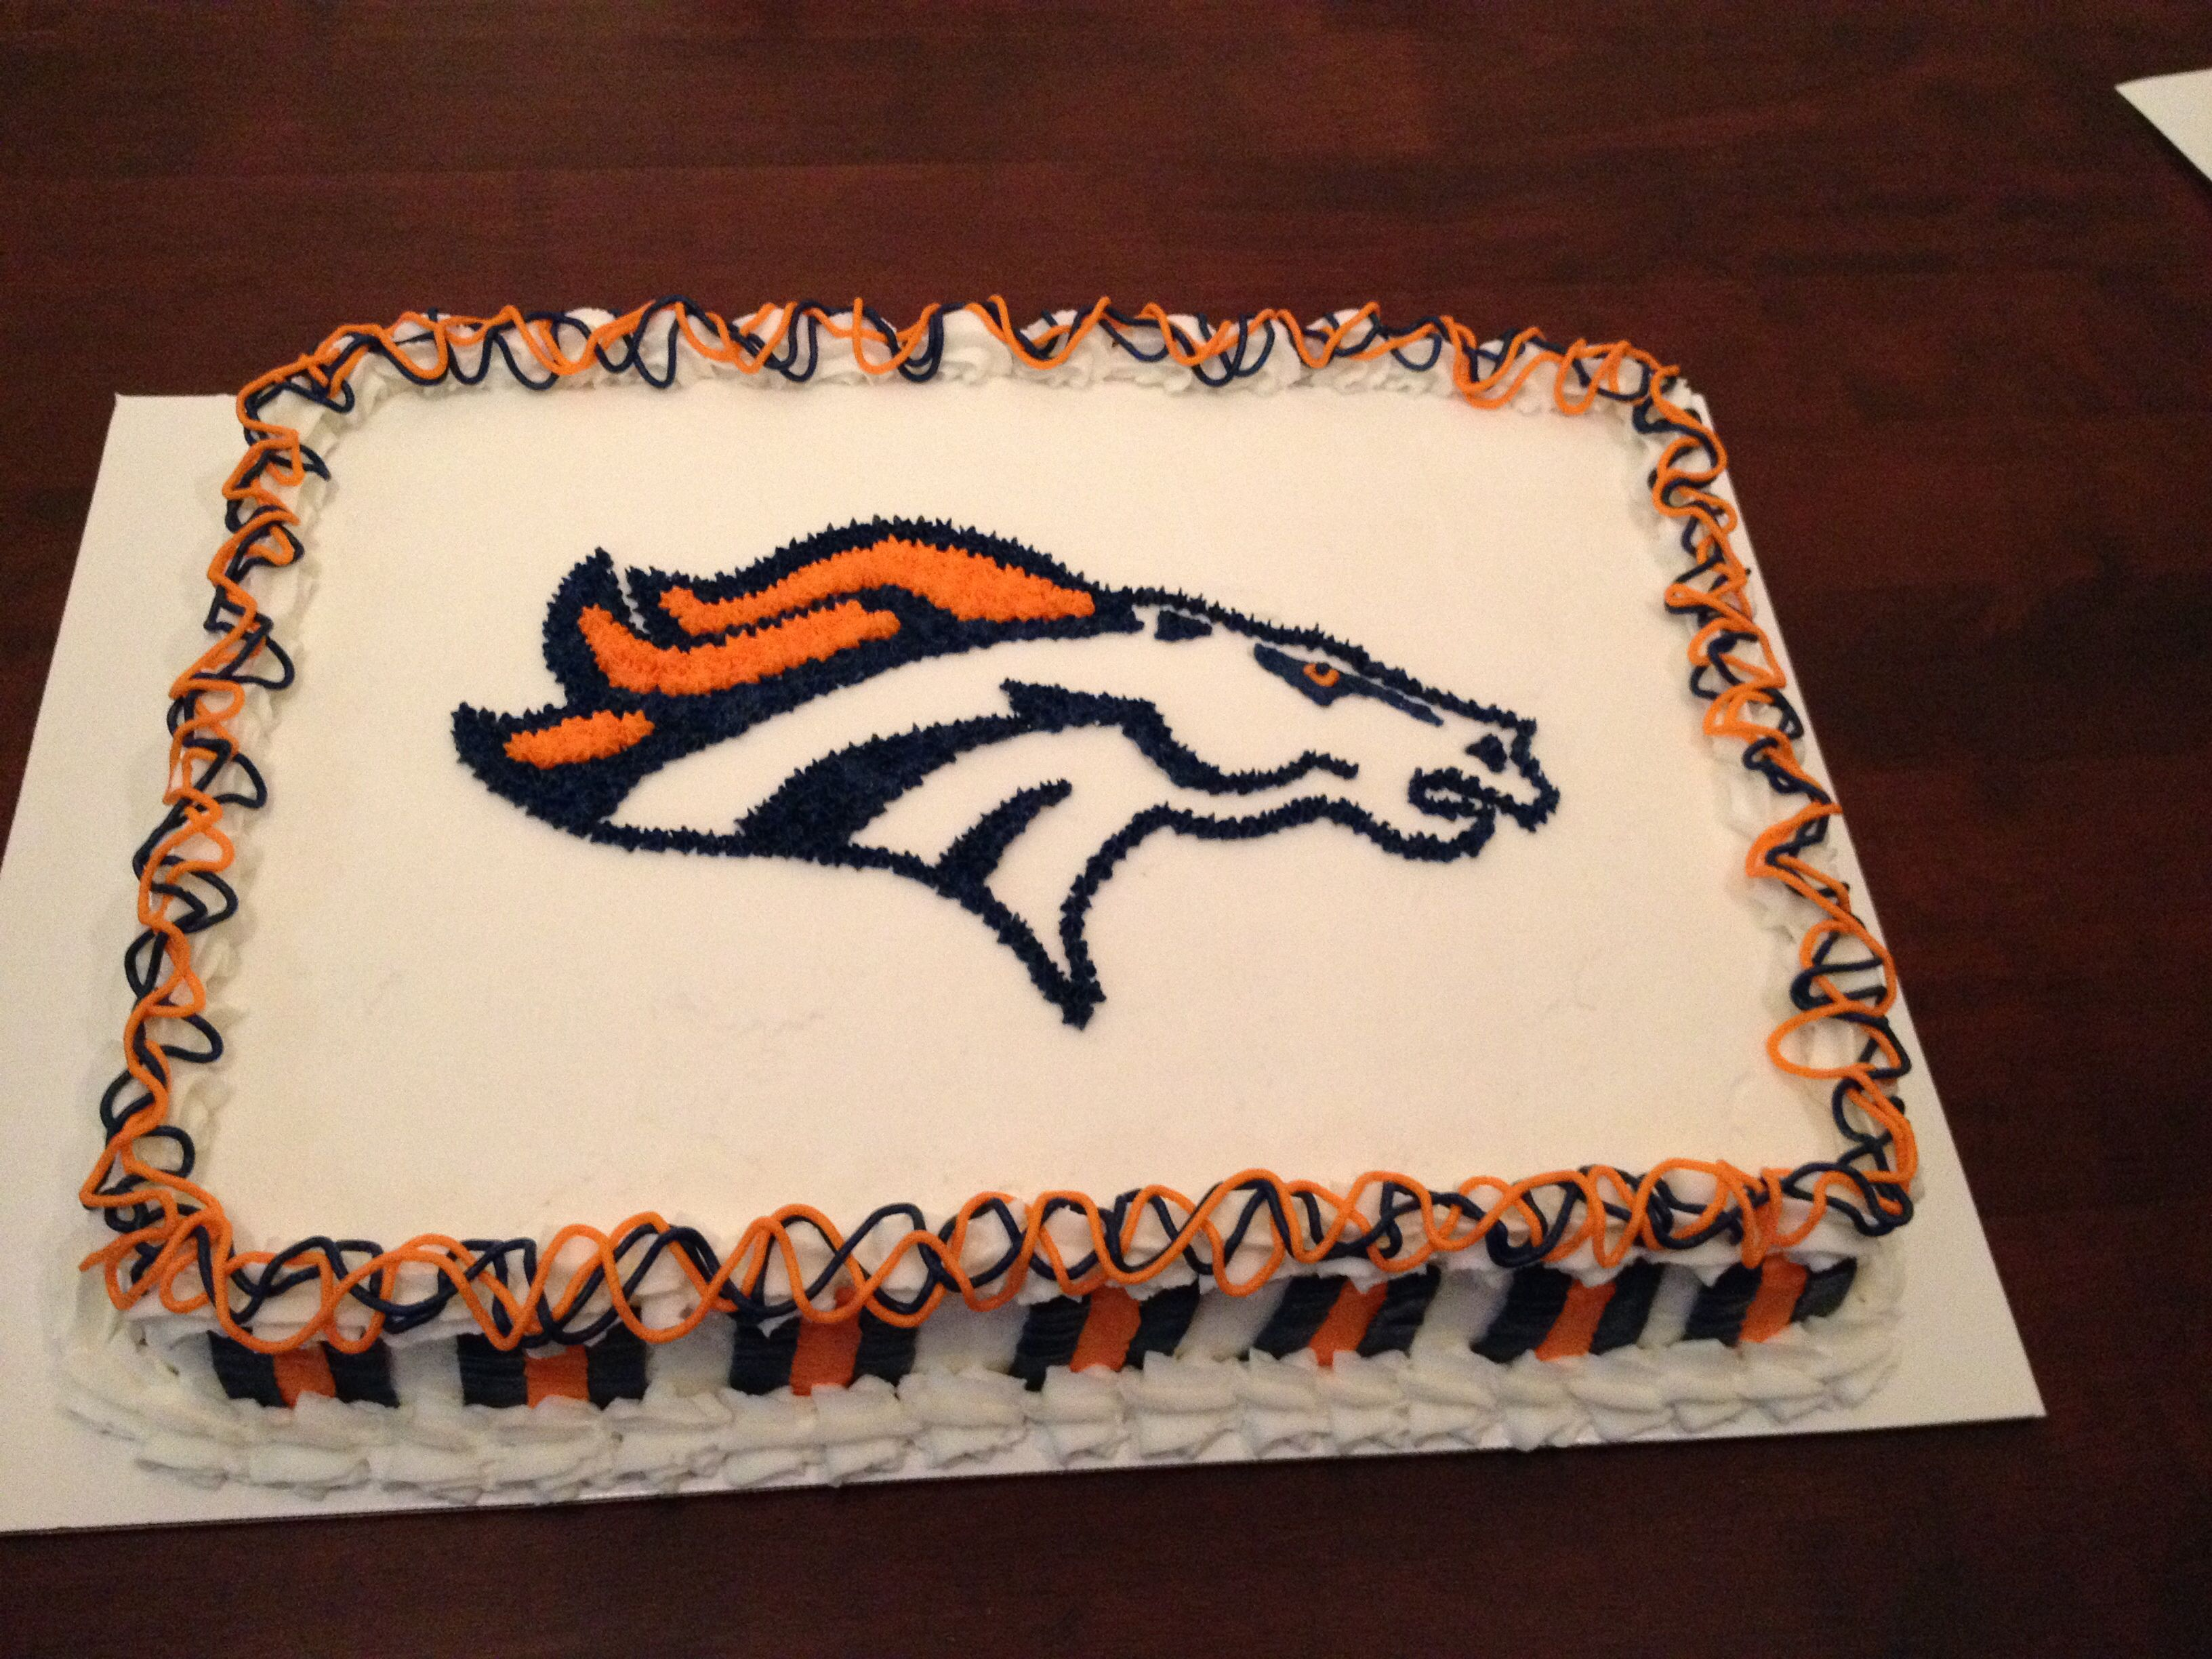 Denver Broncos cake Decorated cakes and cookies made by me